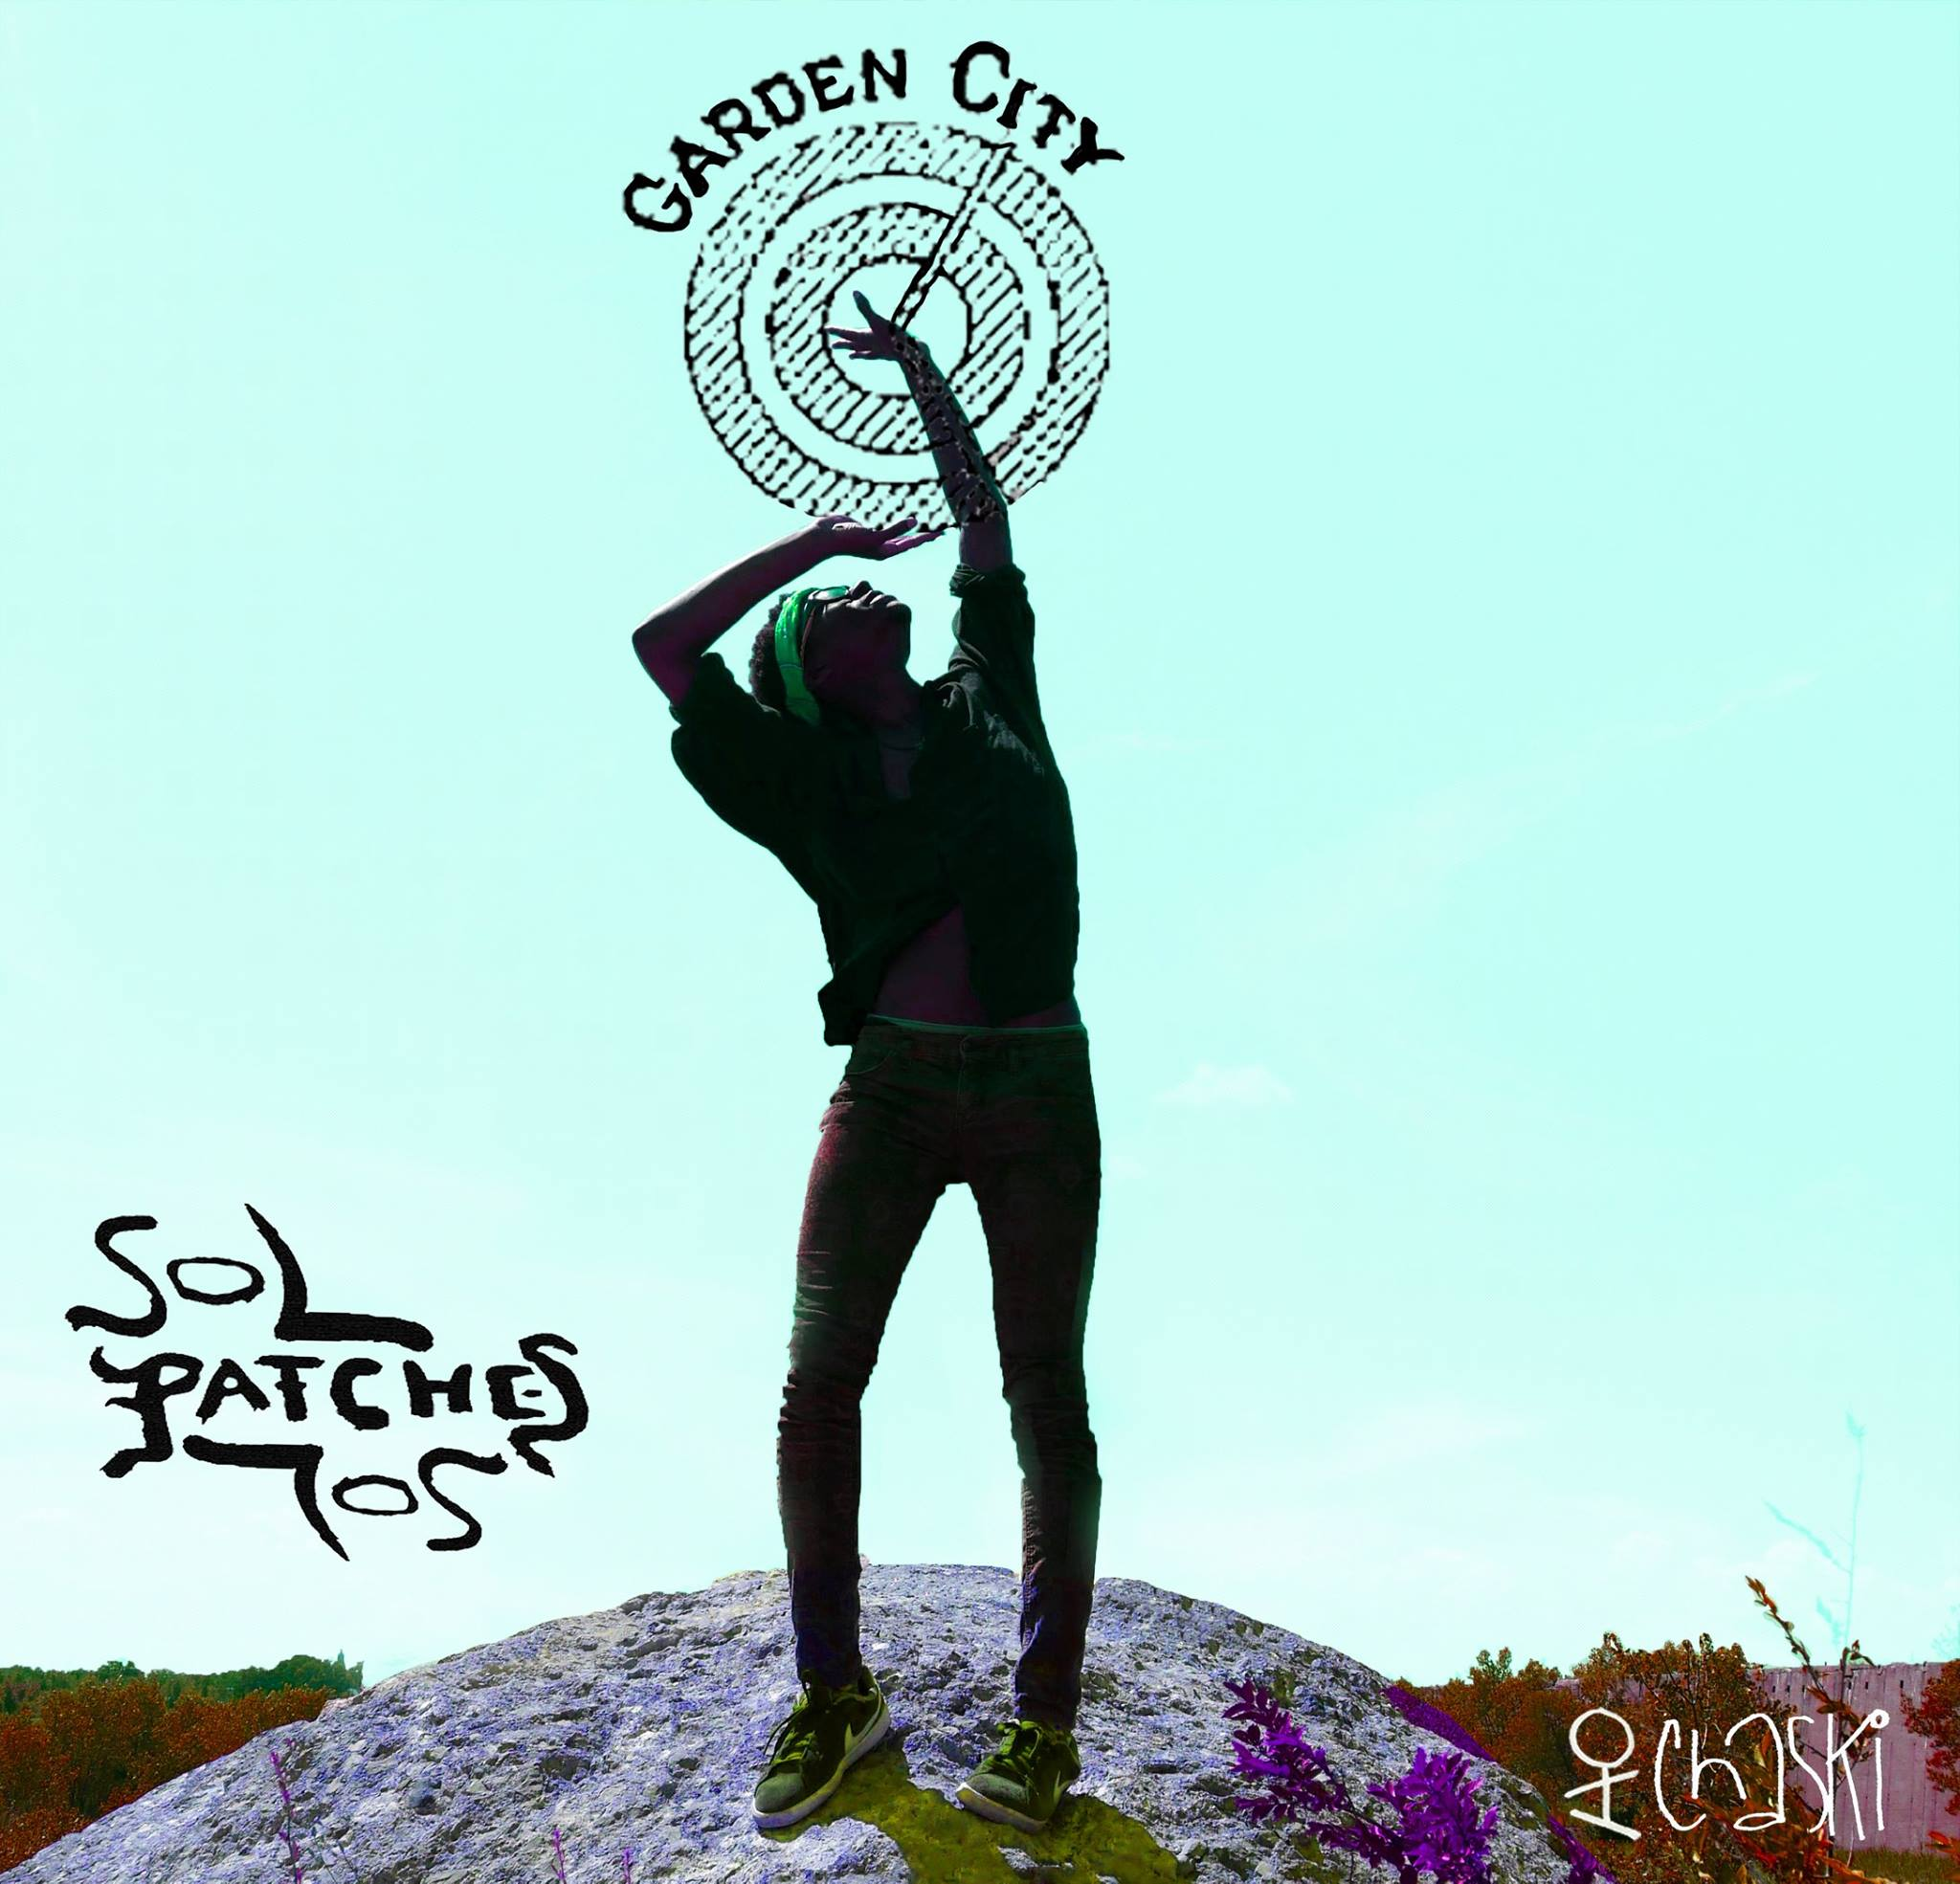 SolPatches Garden City Coverart.jpg